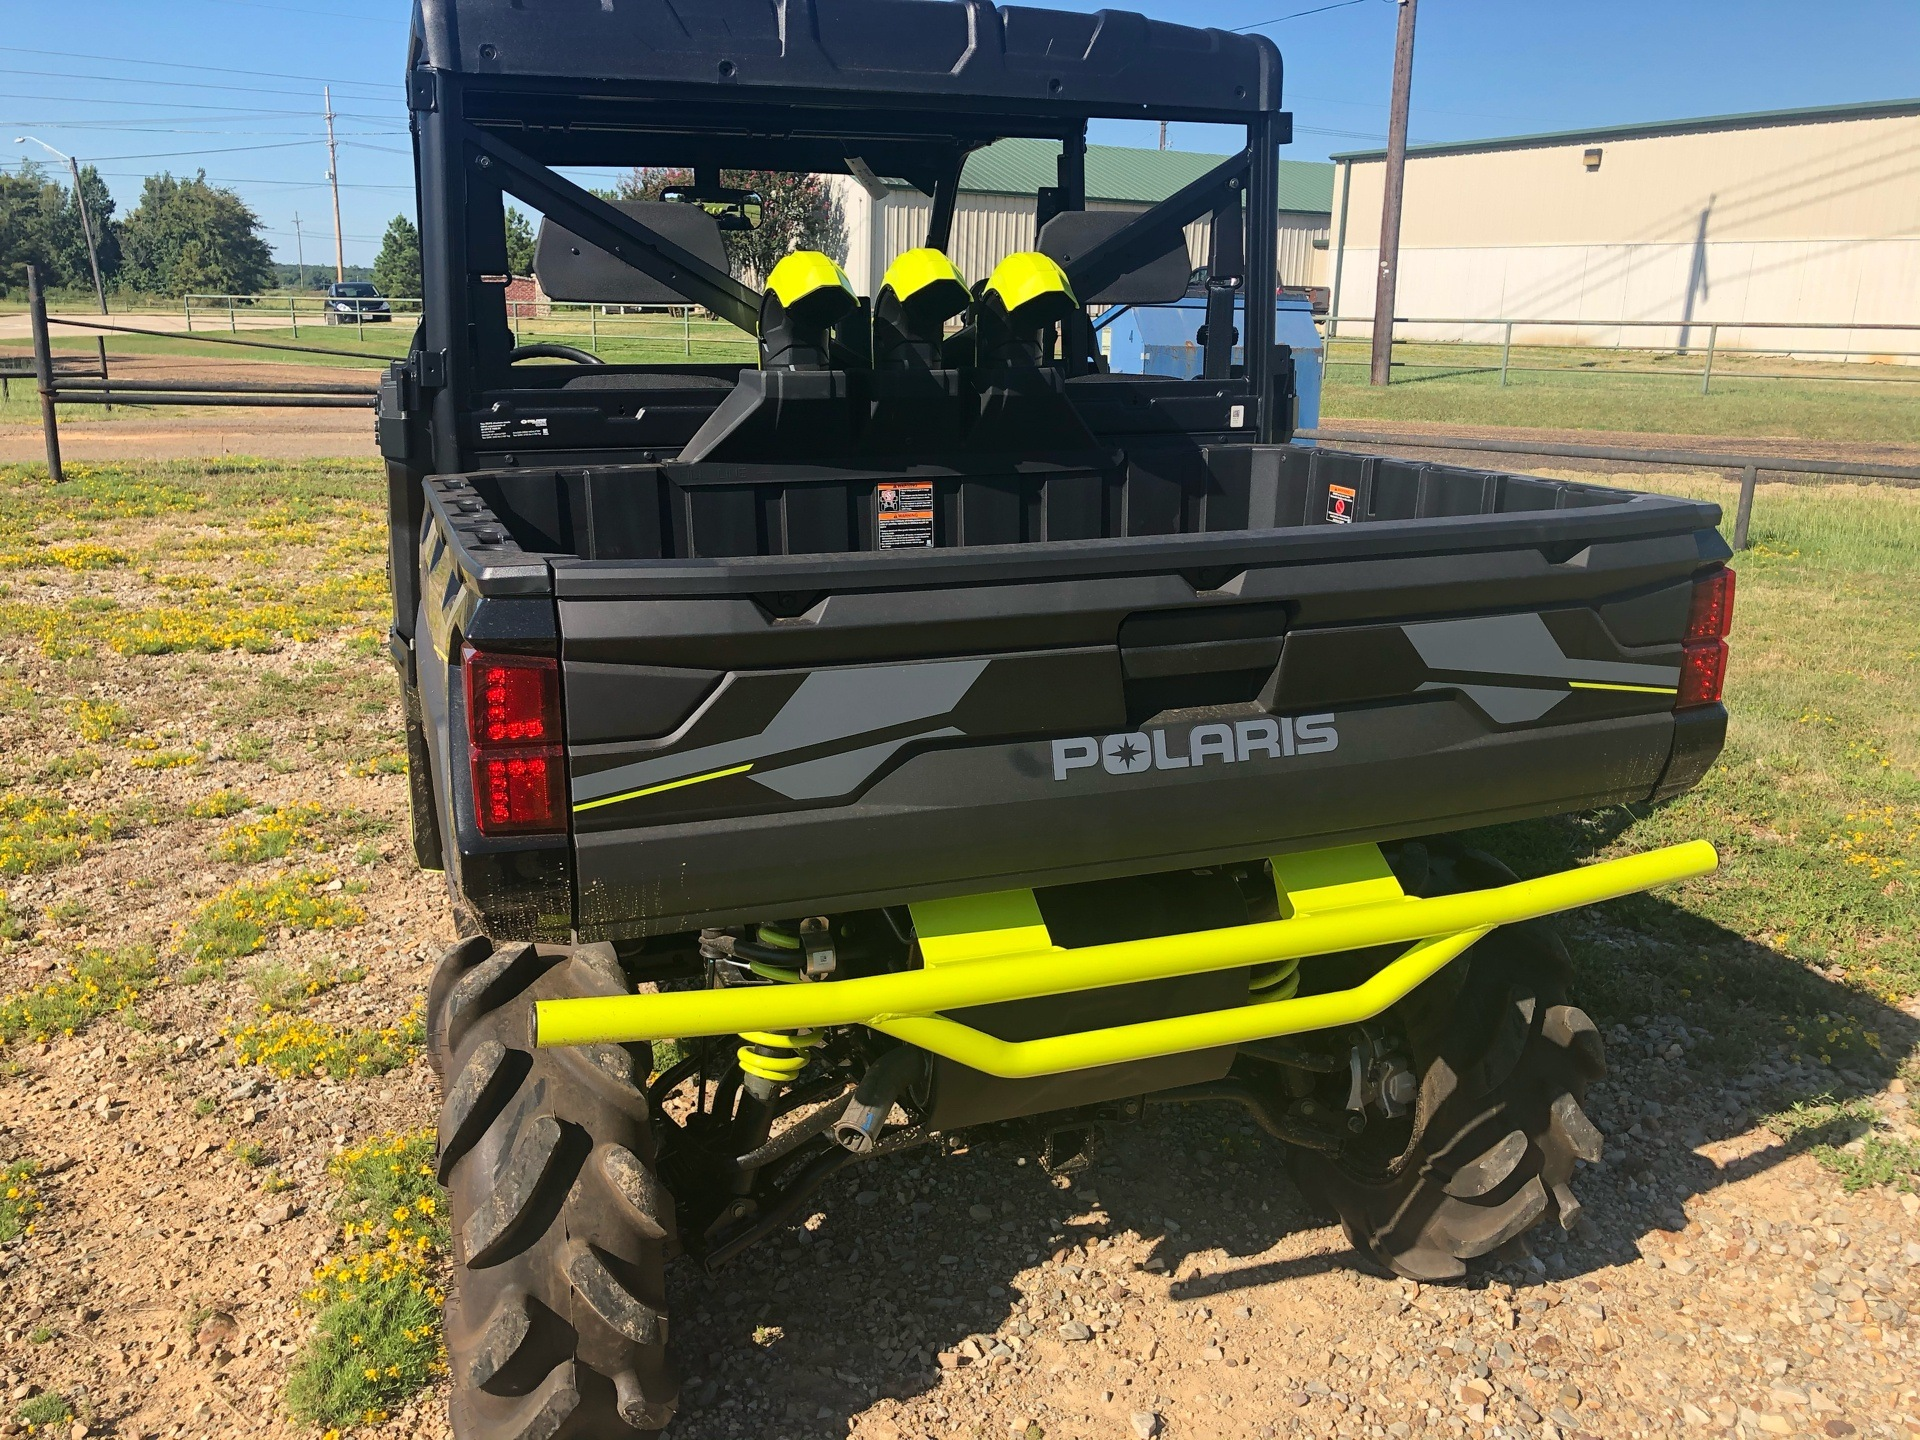 2020 Polaris Ranger Crew XP 1000 High Lifter Edition in Mount Pleasant, Texas - Photo 11